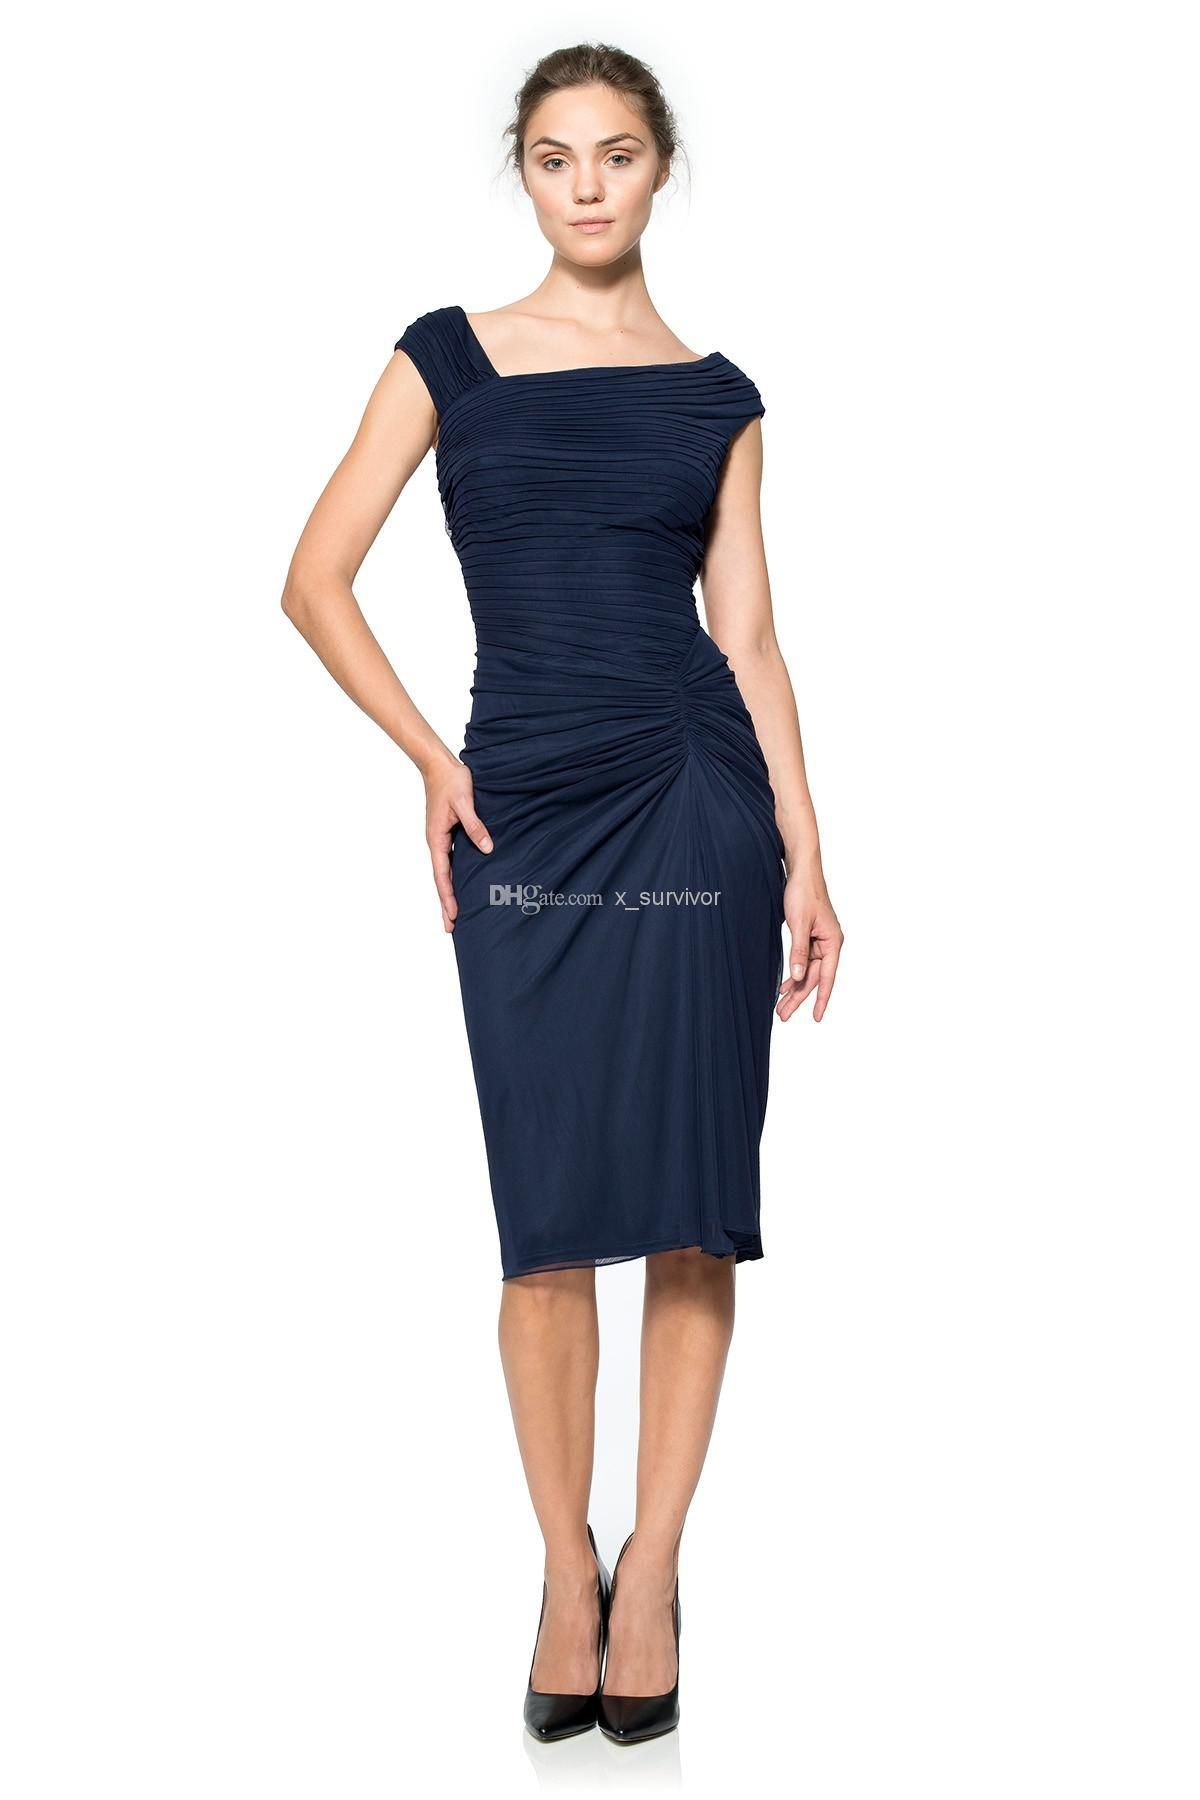 Lo Lo Lord And Taylor Party Dresses - Wholesale cocktail party dress buy draped mesh asymmetric neckline cocktail dresses with ruched sleeves fully